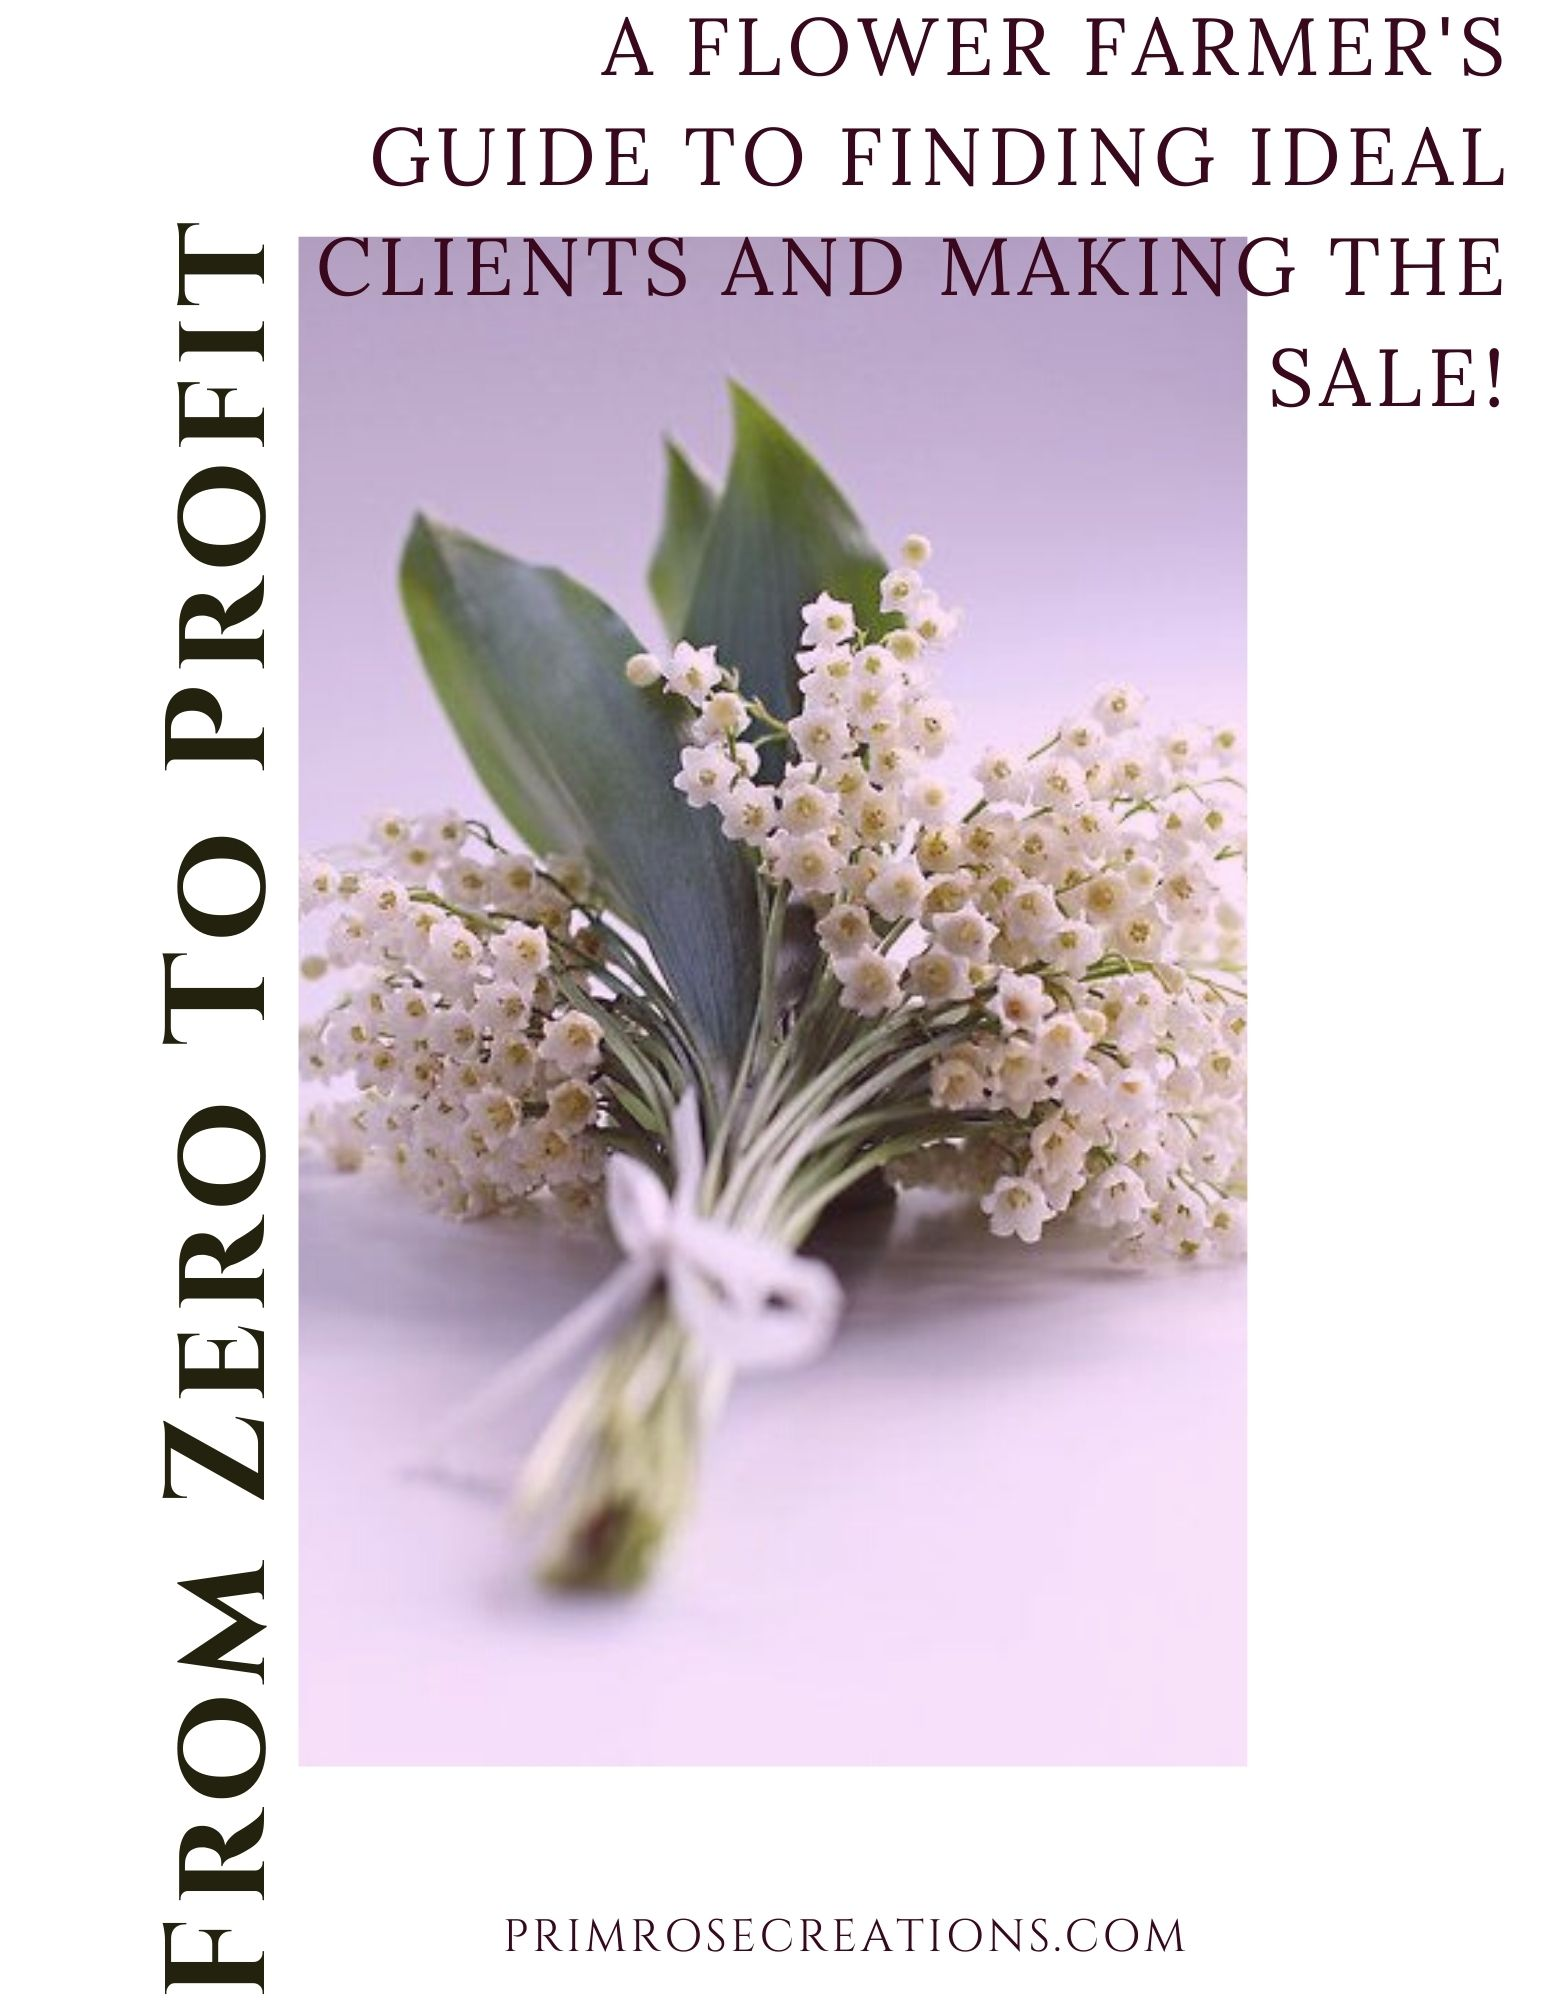 A flower farmer (and other floral industry professionals!) guide to finding their ideal clients, making the pitch, and getting a sale. With this workbook, go from Zero to Profit in just 4 days!